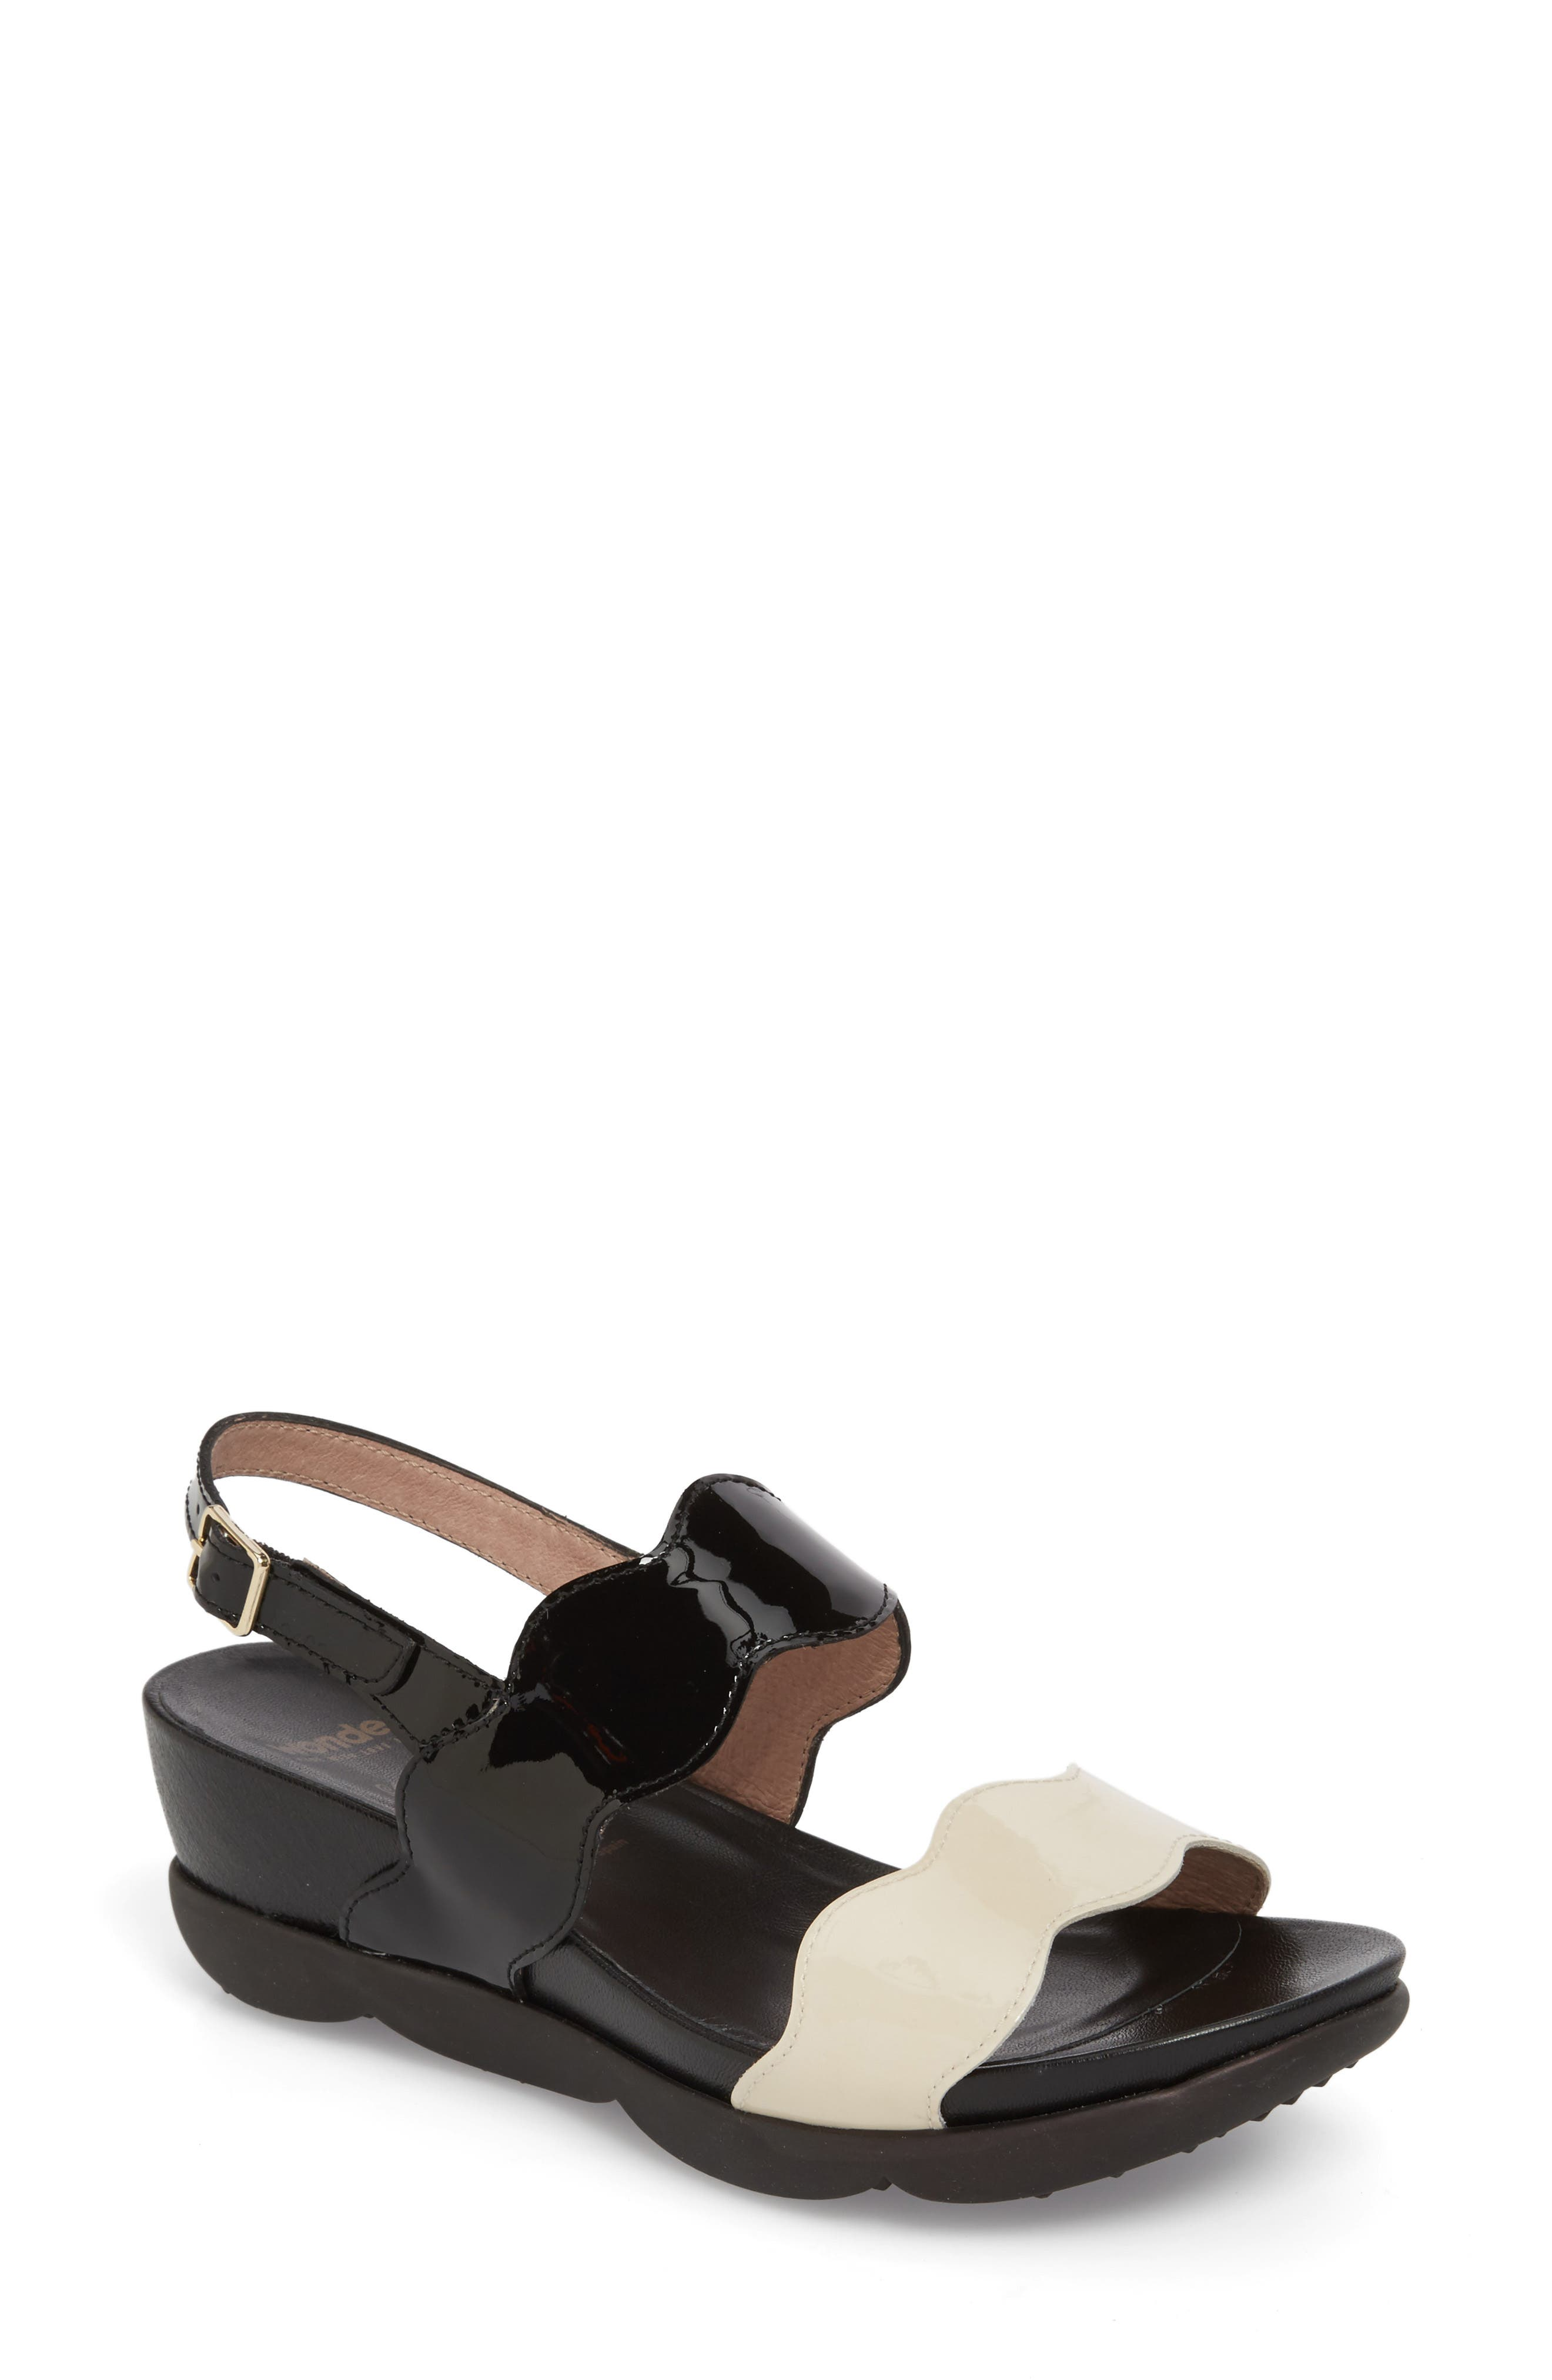 Wonders Wedge Sandal - Black